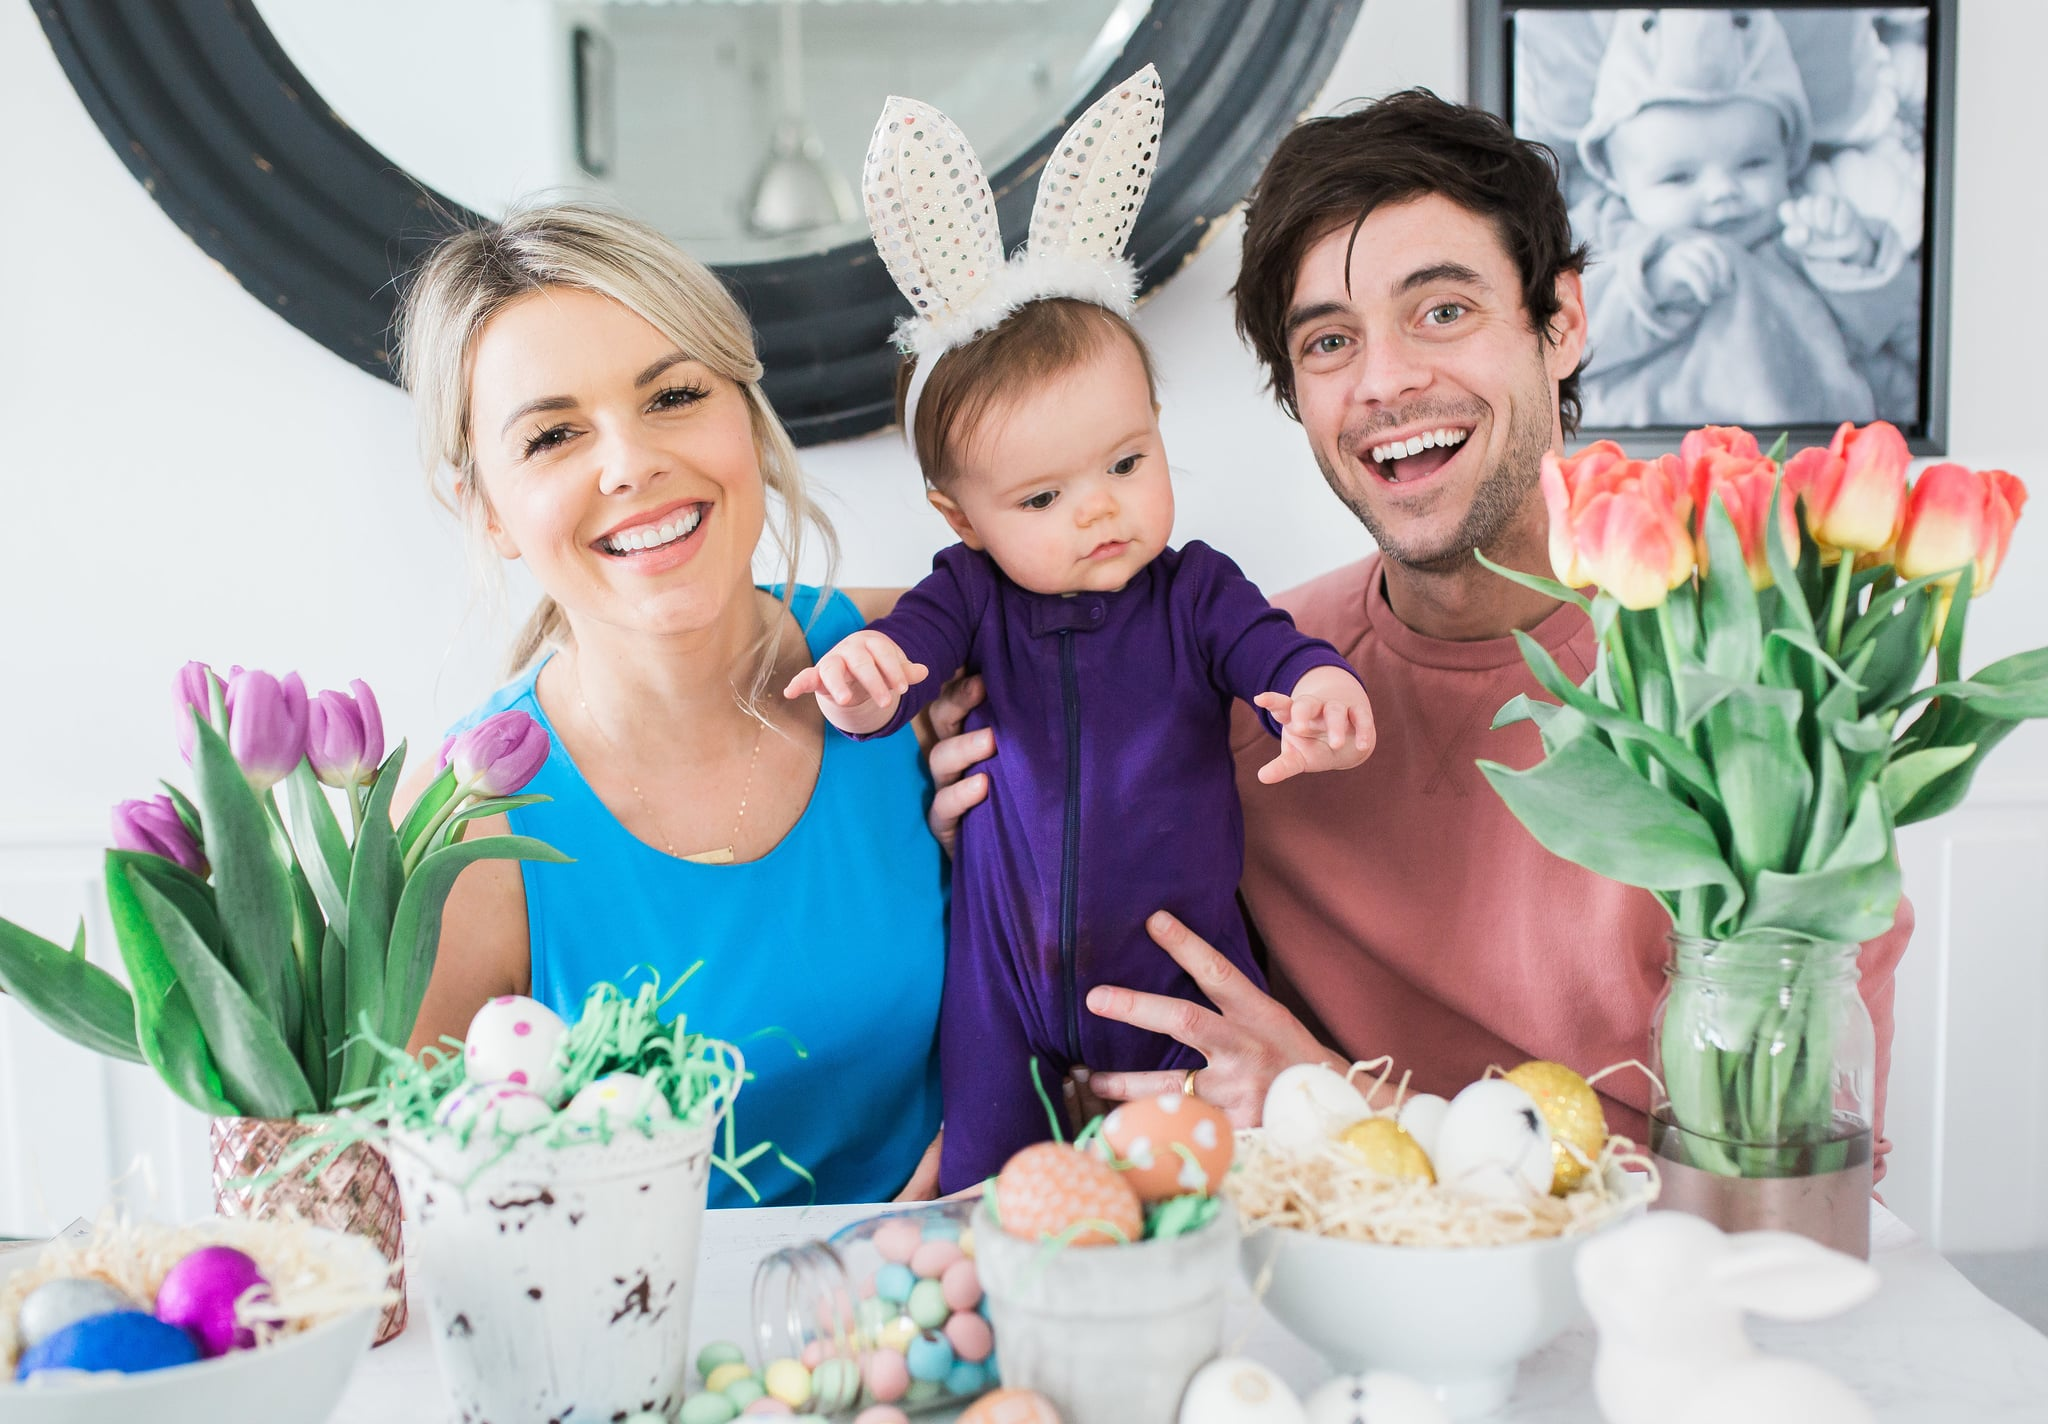 PopsugarLivingDiyAli Fedotowsky's Easter Egg TipsAli Fedotowsky's Egg-Decorating Hack Is Mess-Free and Beyond GeniusApril 9, 2017 by Macy Cate Williams42 SharesChat with us on Facebook Messenger. Learn what's trending across POPSUGAR.Between new daughter Molly and a recent wedding to Kevin Manno, former Bachelorette Ali Fedotowsky-Manno is one busy lady. She's growing her new family and hosting a slew of TV shows, but she's still finding time to get ready for Easter too.